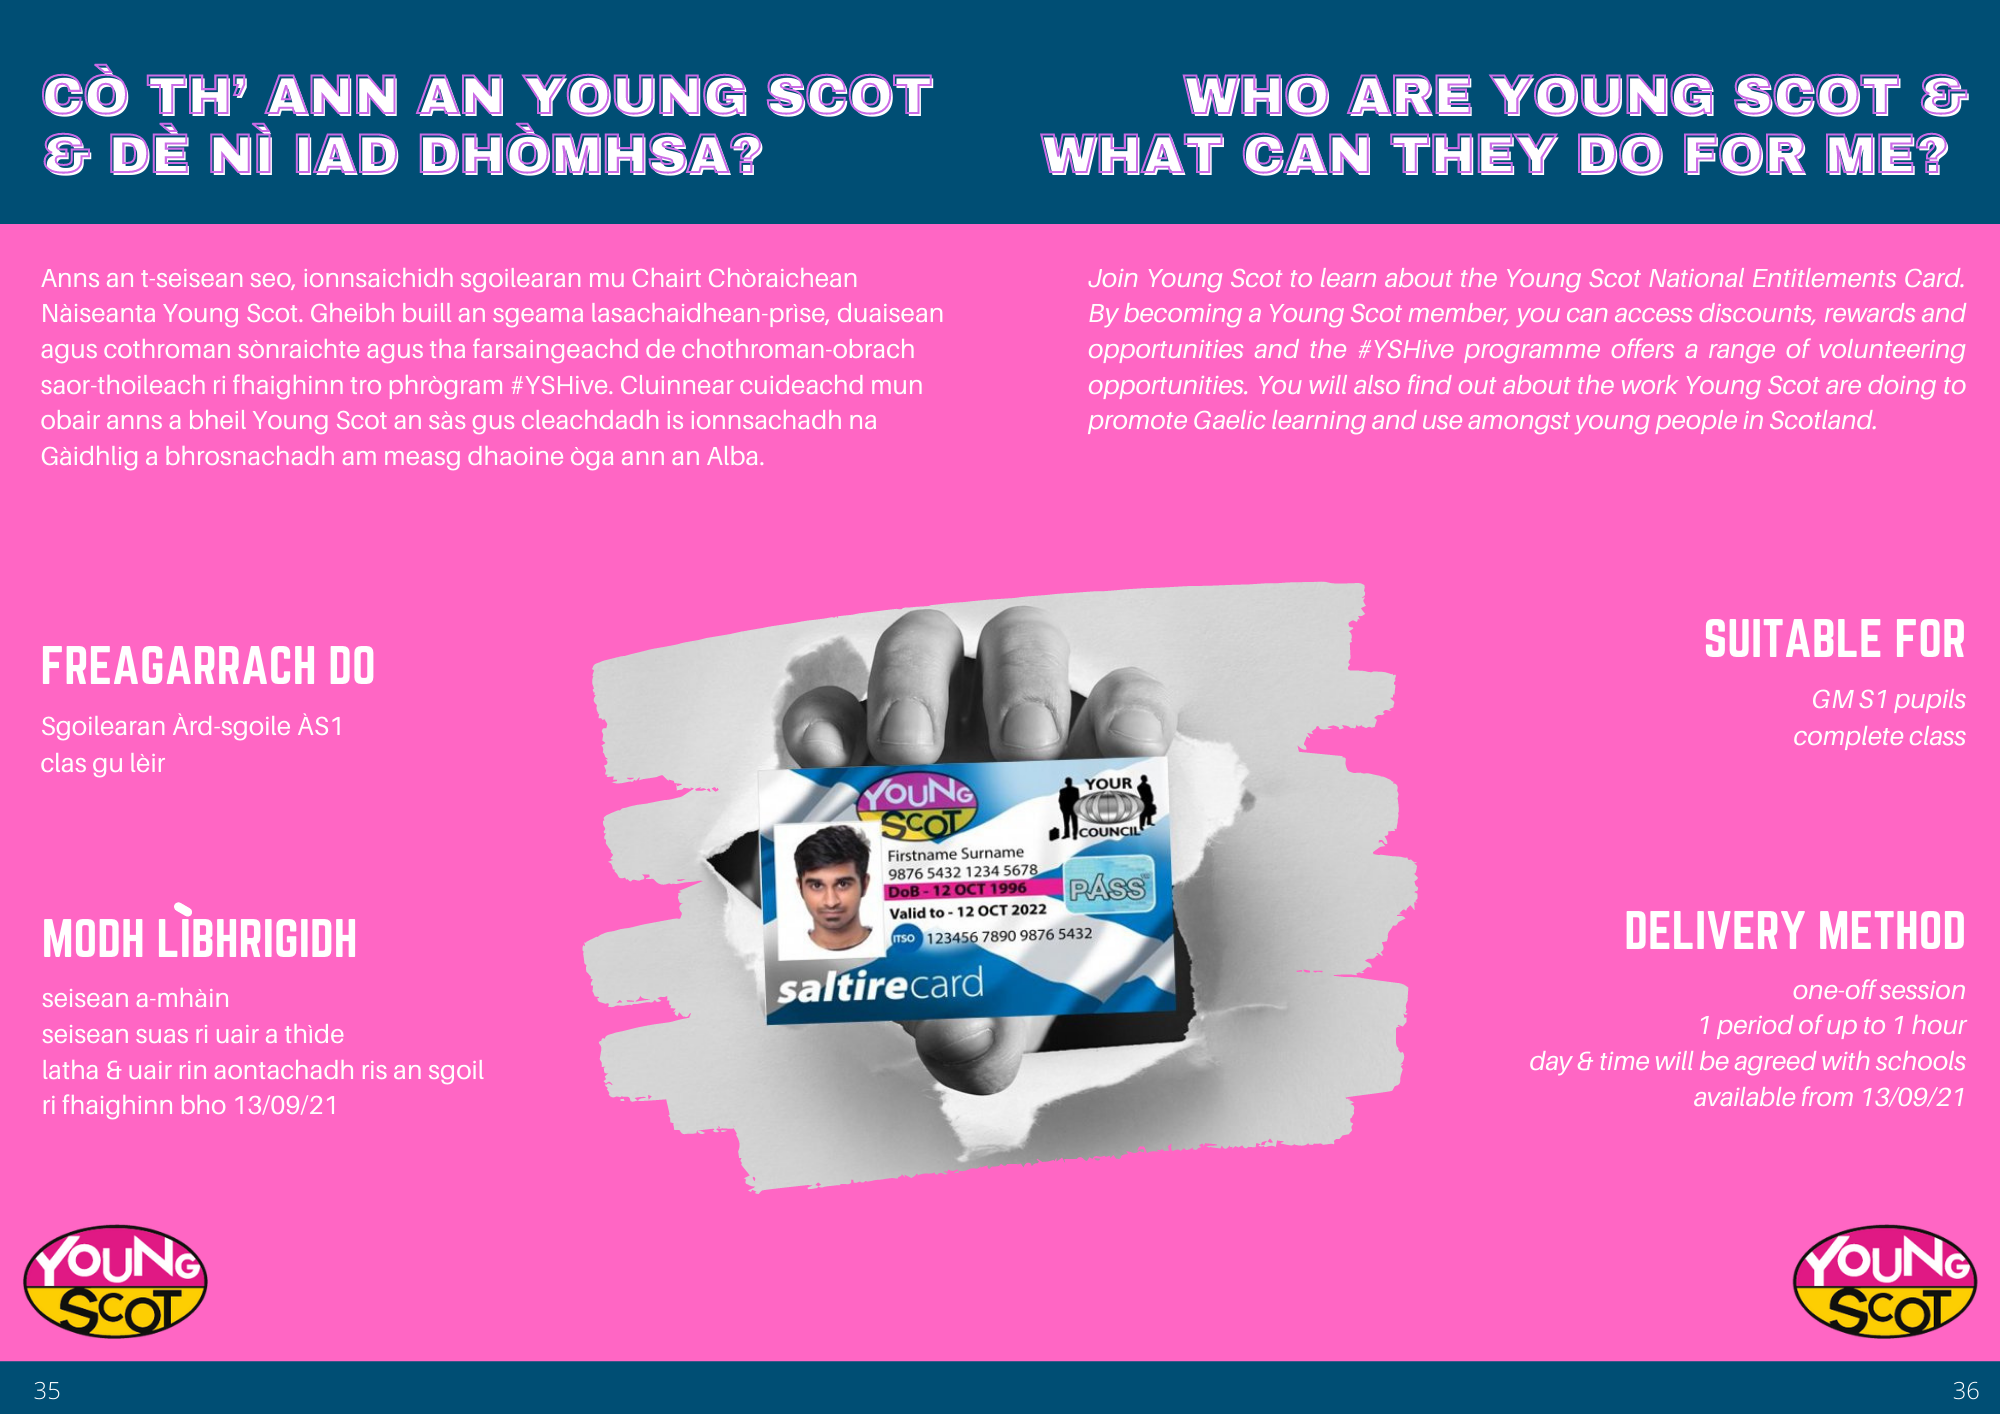 Young Scot - Gaelic National Offers 2021/22